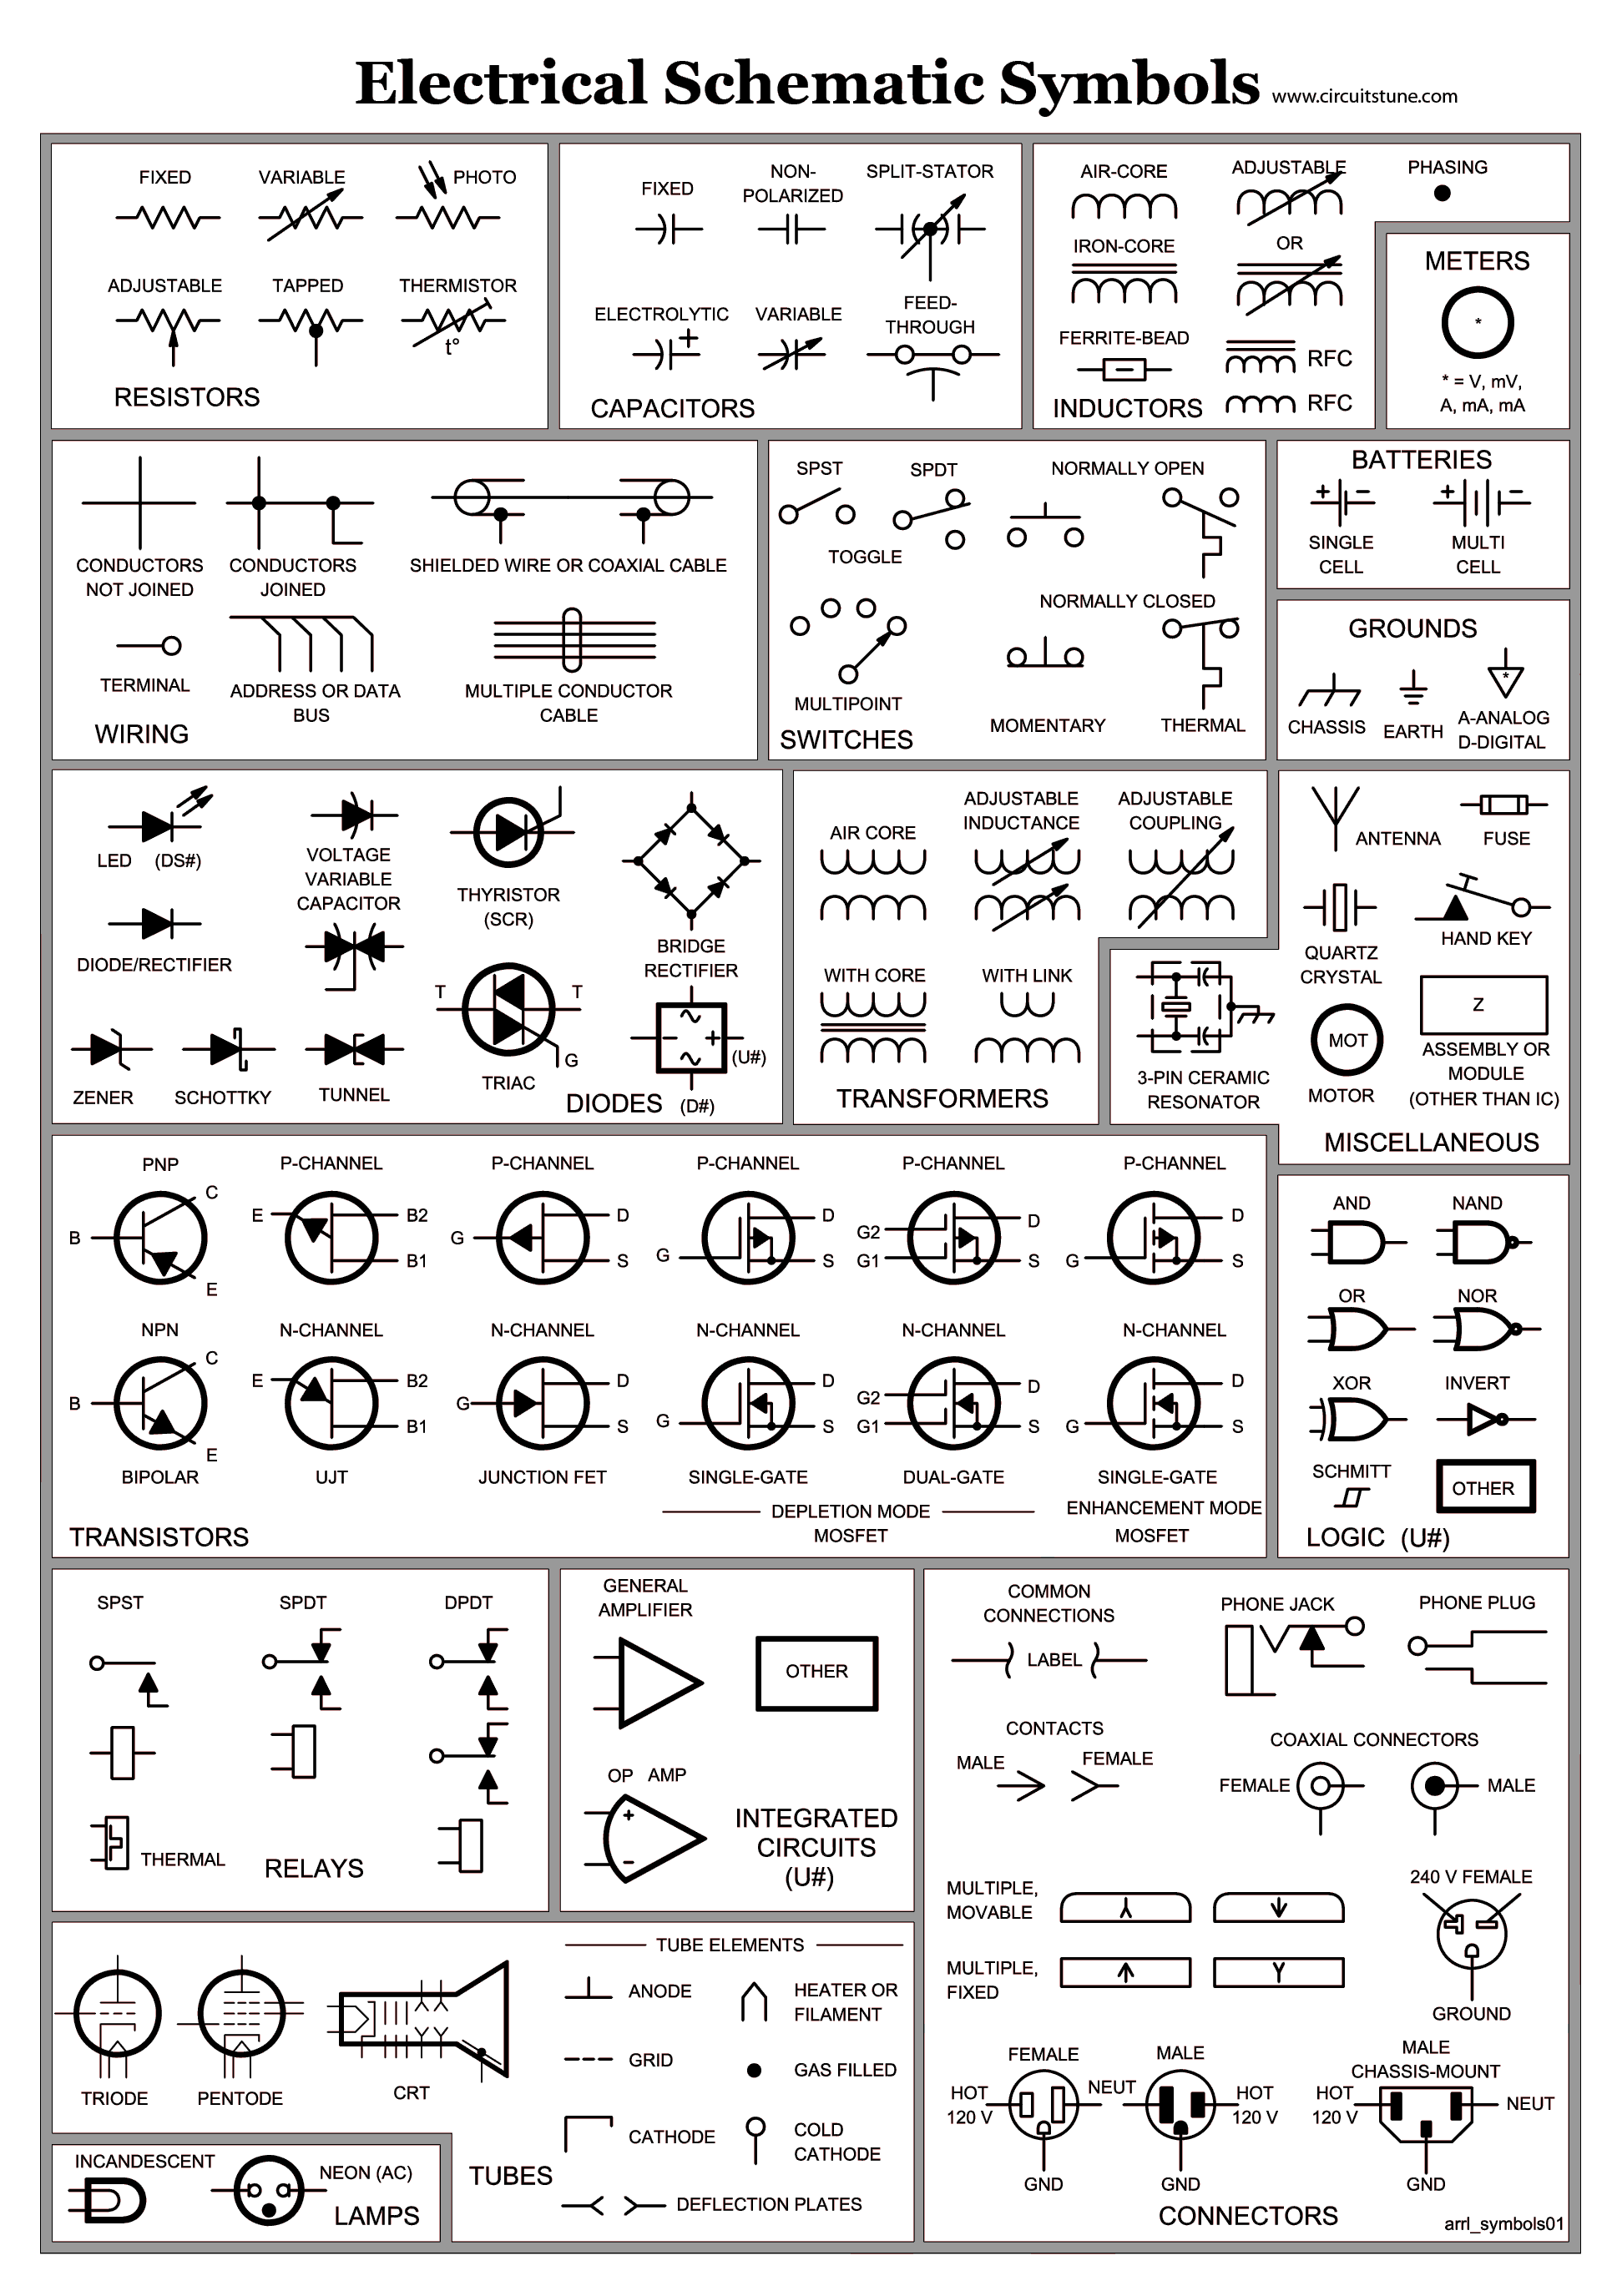 hight resolution of electrical schematic symbols wire diagram symbols automotive wiringelectrical schematic symbols wire diagram symbols automotive wiring schematic